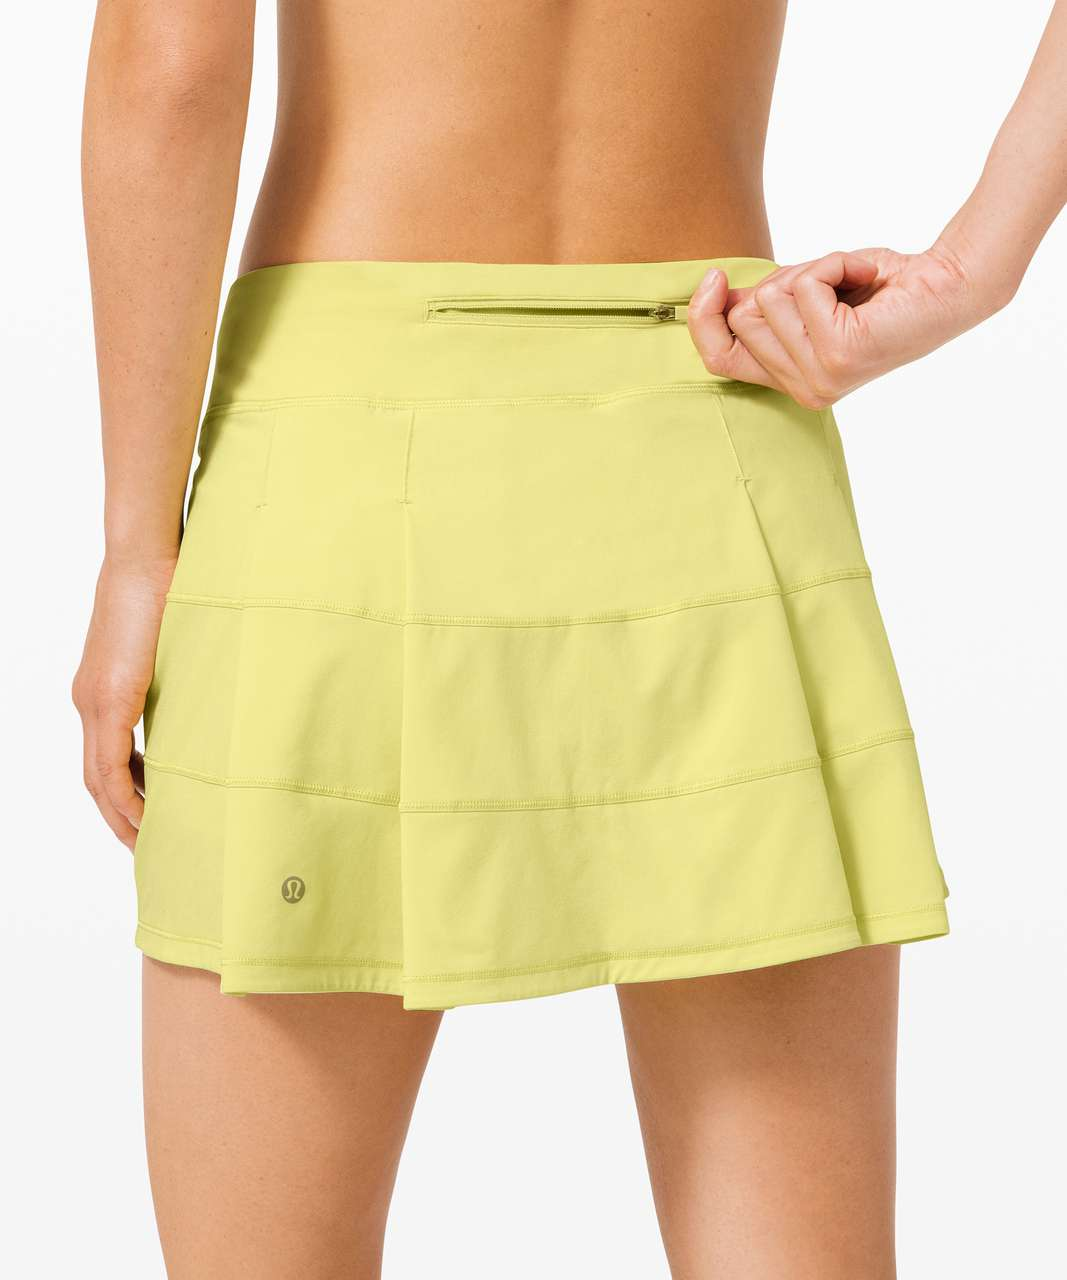 "Lululemon Pace Rival Skirt (Tall) *4-way Stretch 15"" - Lemon Vibe"